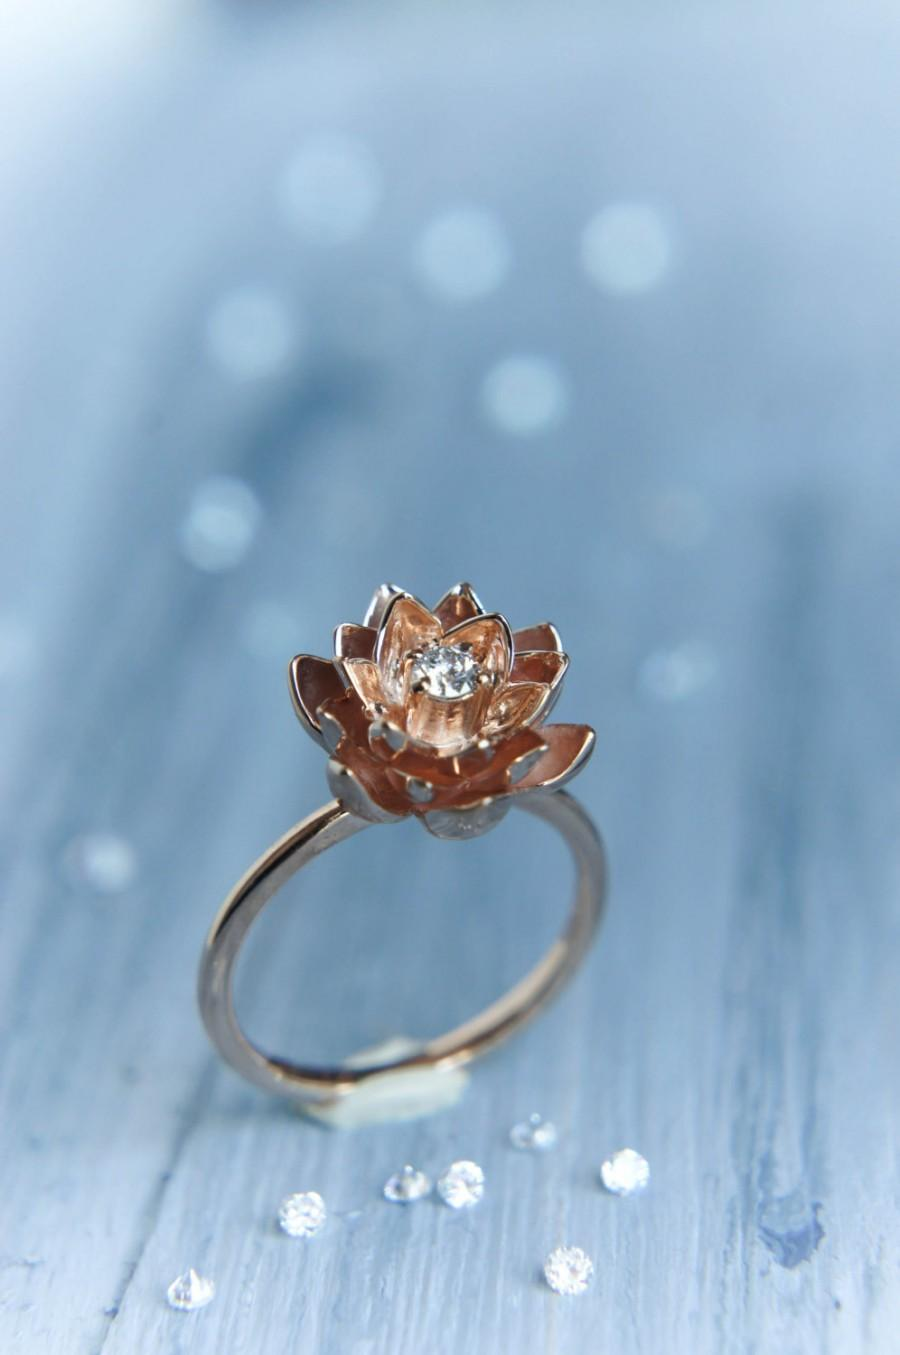 lotus engagement flower jewellery ring womens sterling cubic image rings silver zirconia ladies